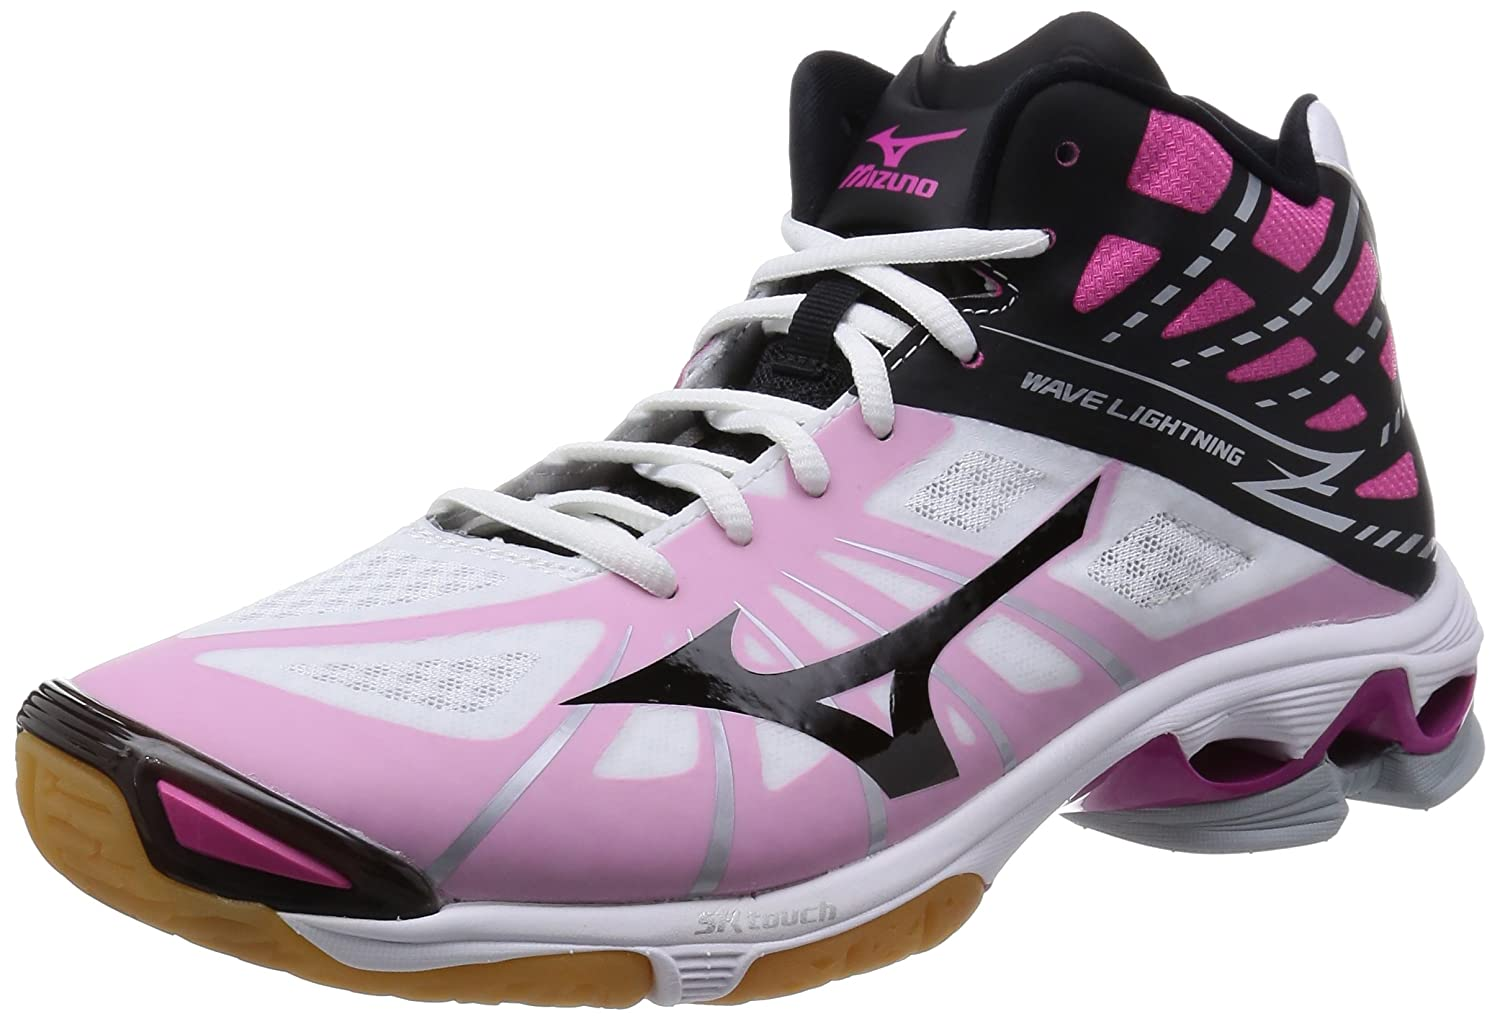 Mizuno Chaussures De Volley-ball Mi GS3jBOect